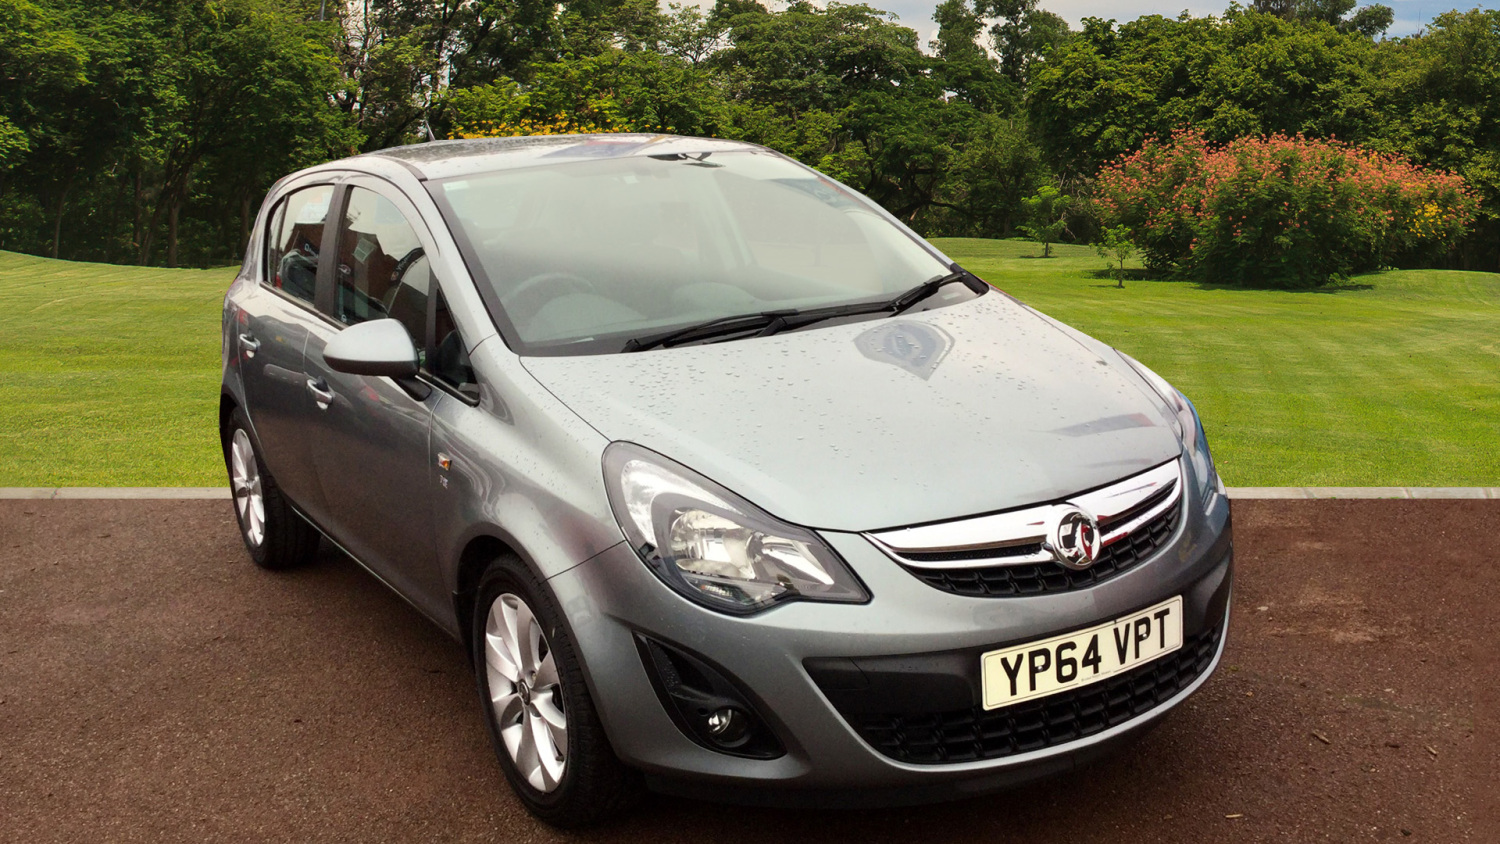 Corsa excite deals